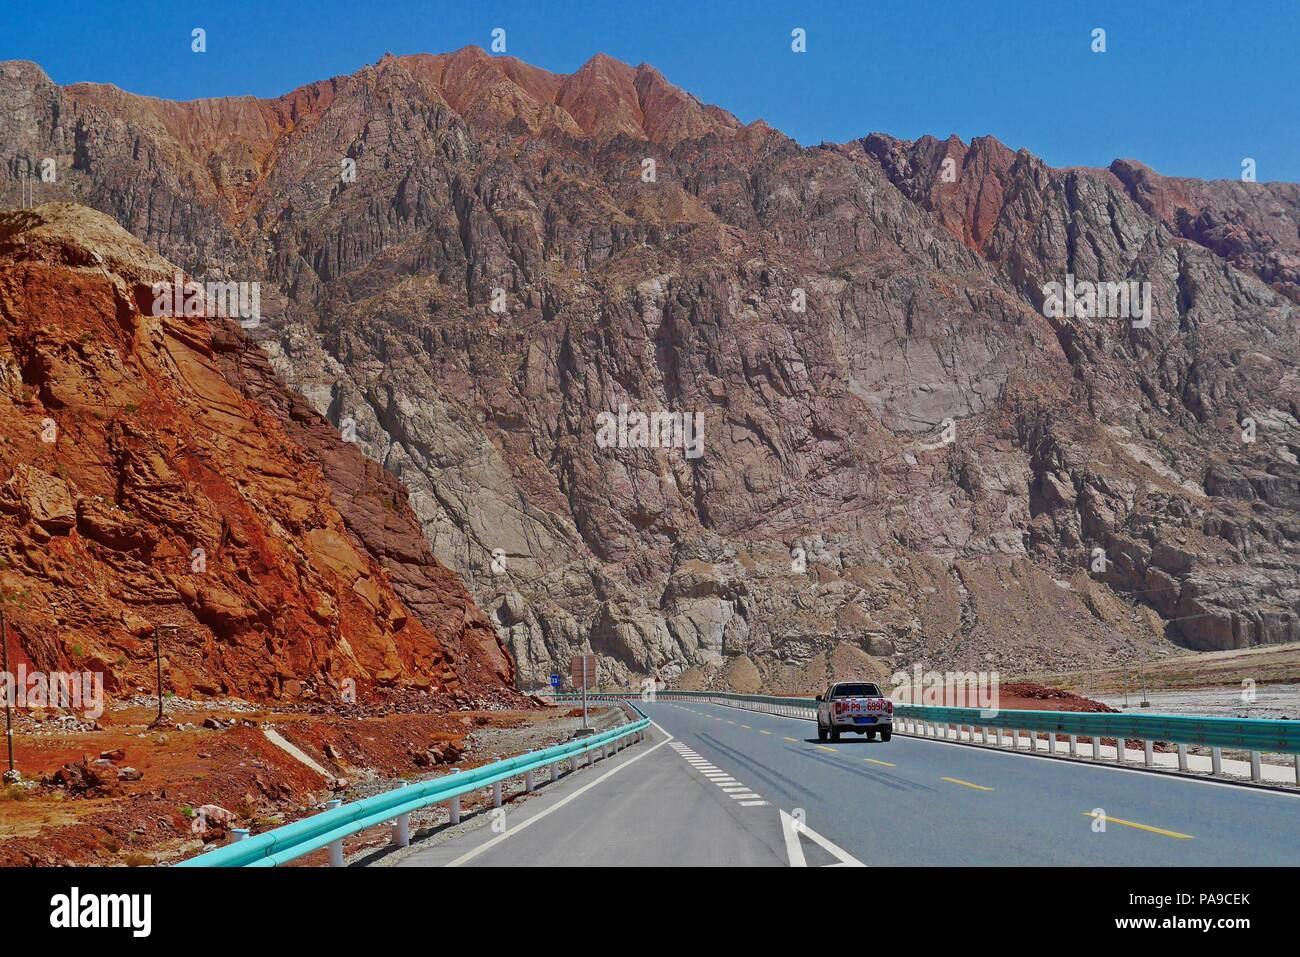 The good paved road conditions and beautiful scenic view of Karakoram Highway (China Section) in Xinjiang. - Stock Image